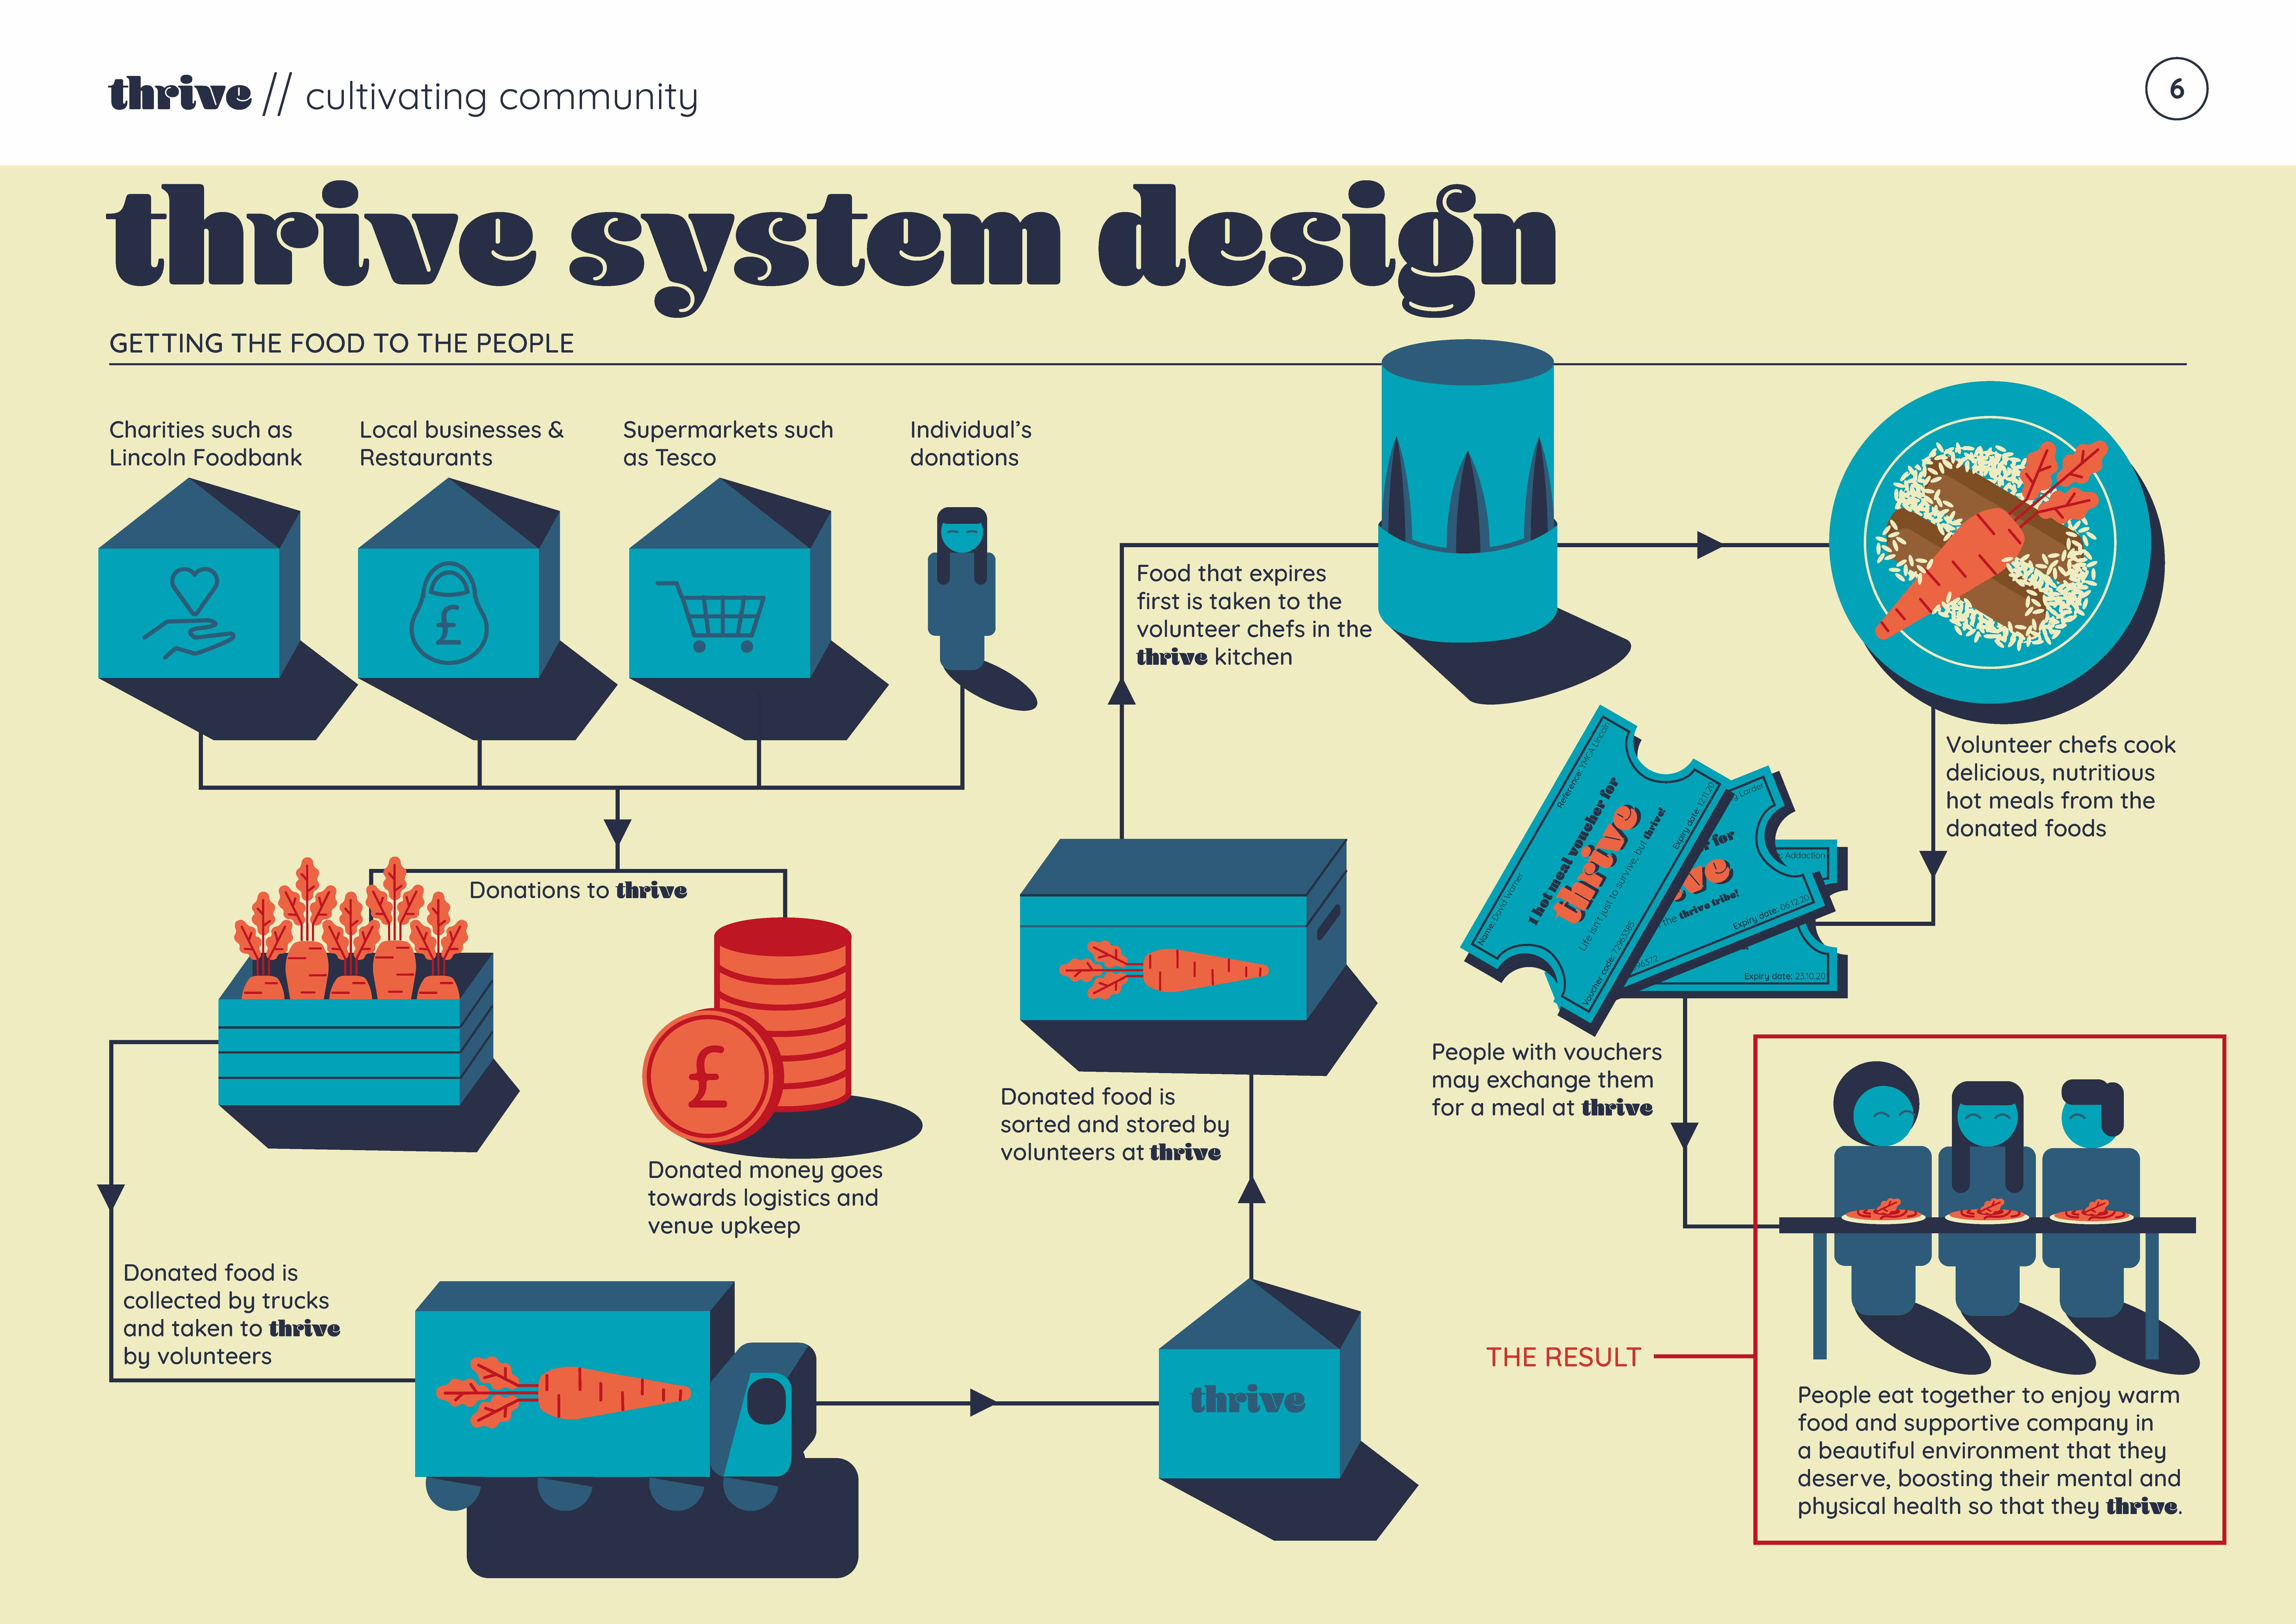 An infographic slide summarising the 'thrive system design'.